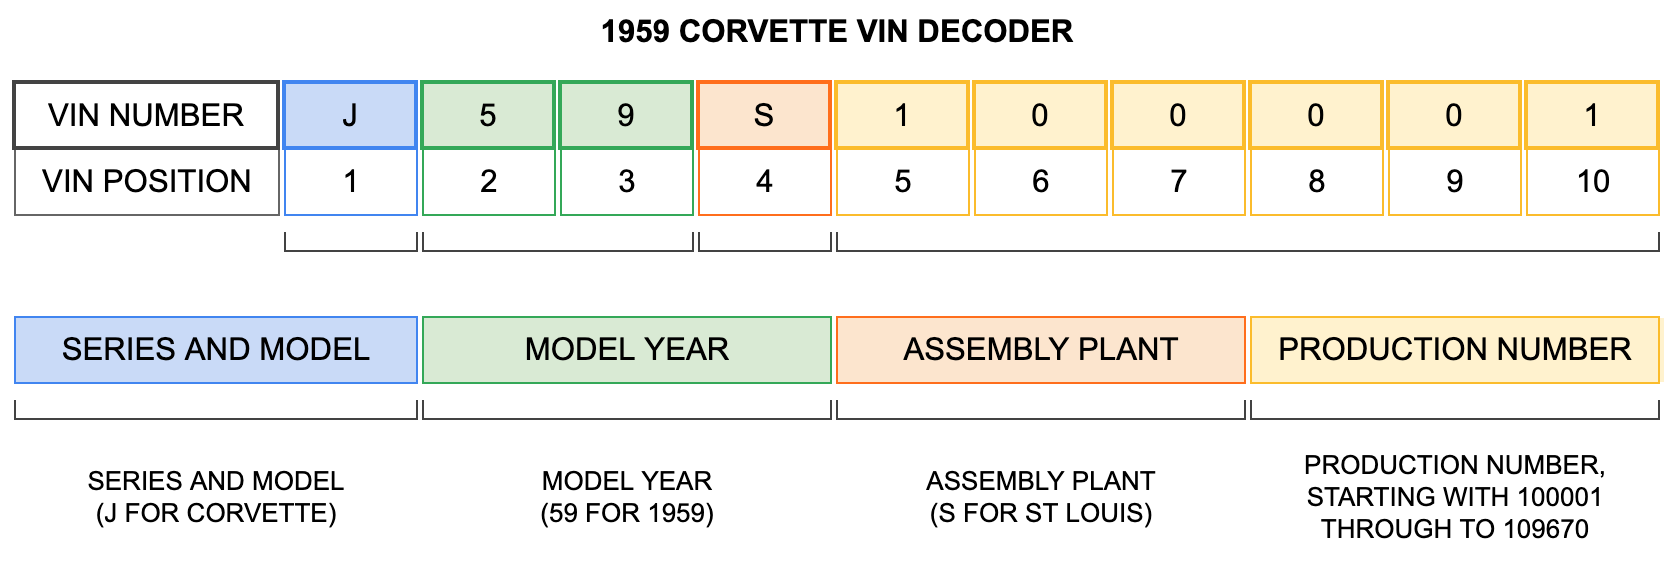 1959 Corvette VIN Decoder 1